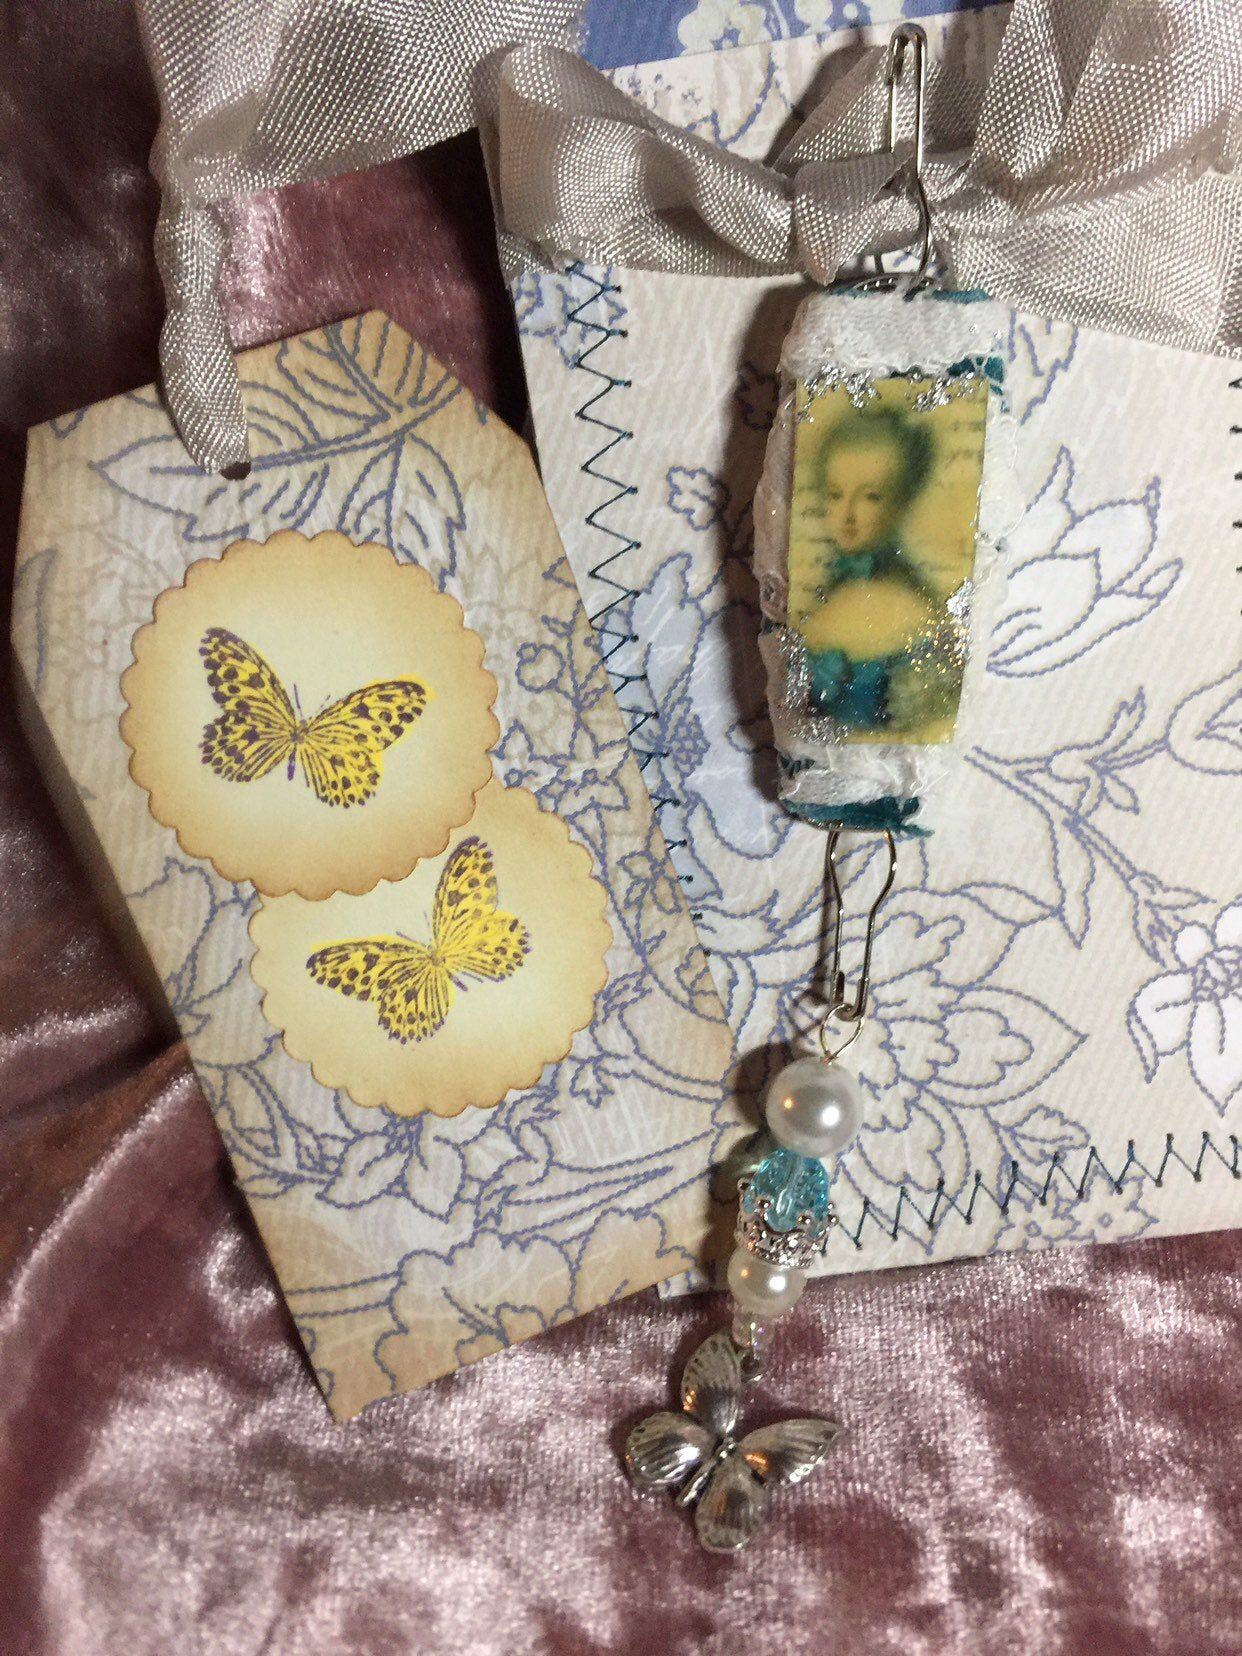 Junk journal boho bead charm with tag and pocket book